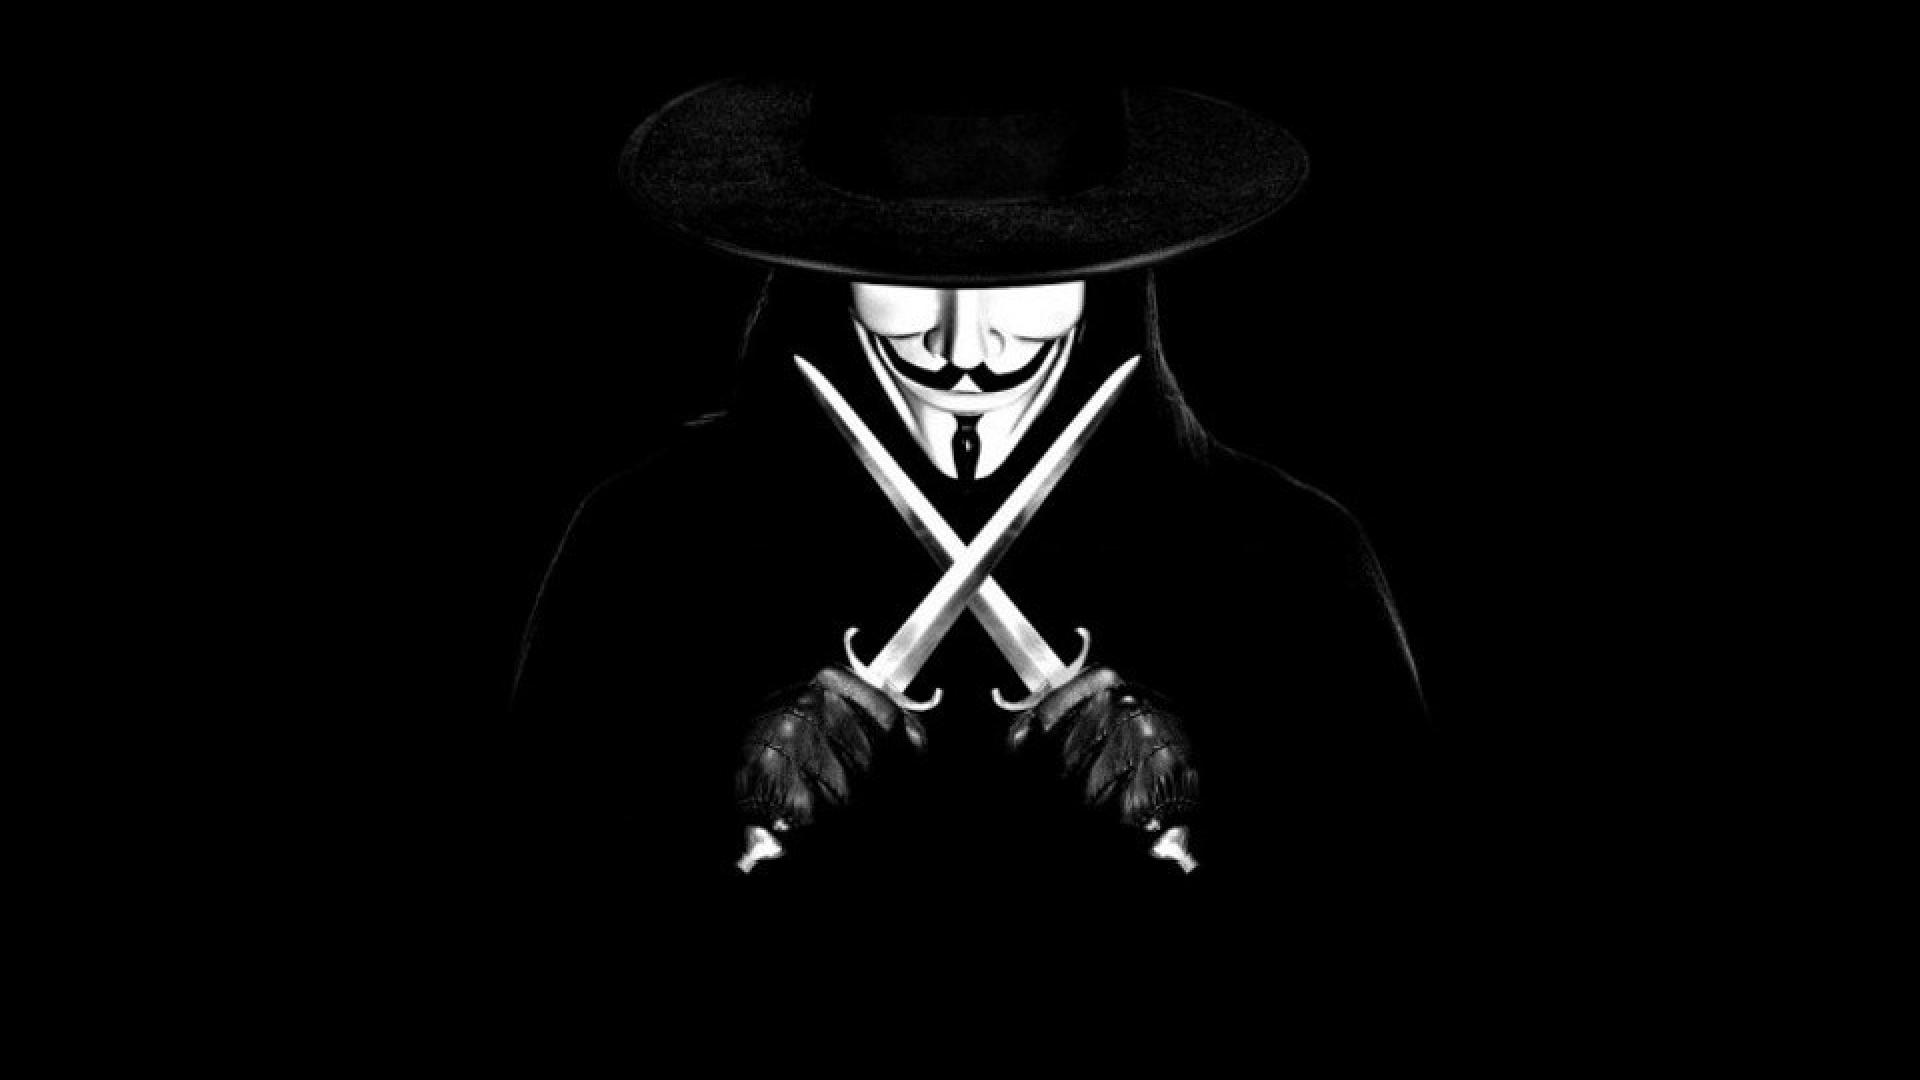 Anonymous Wallpaper HD for Iphone  PixelsTalk Anonymous Pictures Wallpapers Free  PixelsTalk Anonymous Guy Wallpaper  People HD Wallpapers  HDwallpapers HD Anonymous Wallpapers HD, Desktop Backgrounds , Images 1920x1080